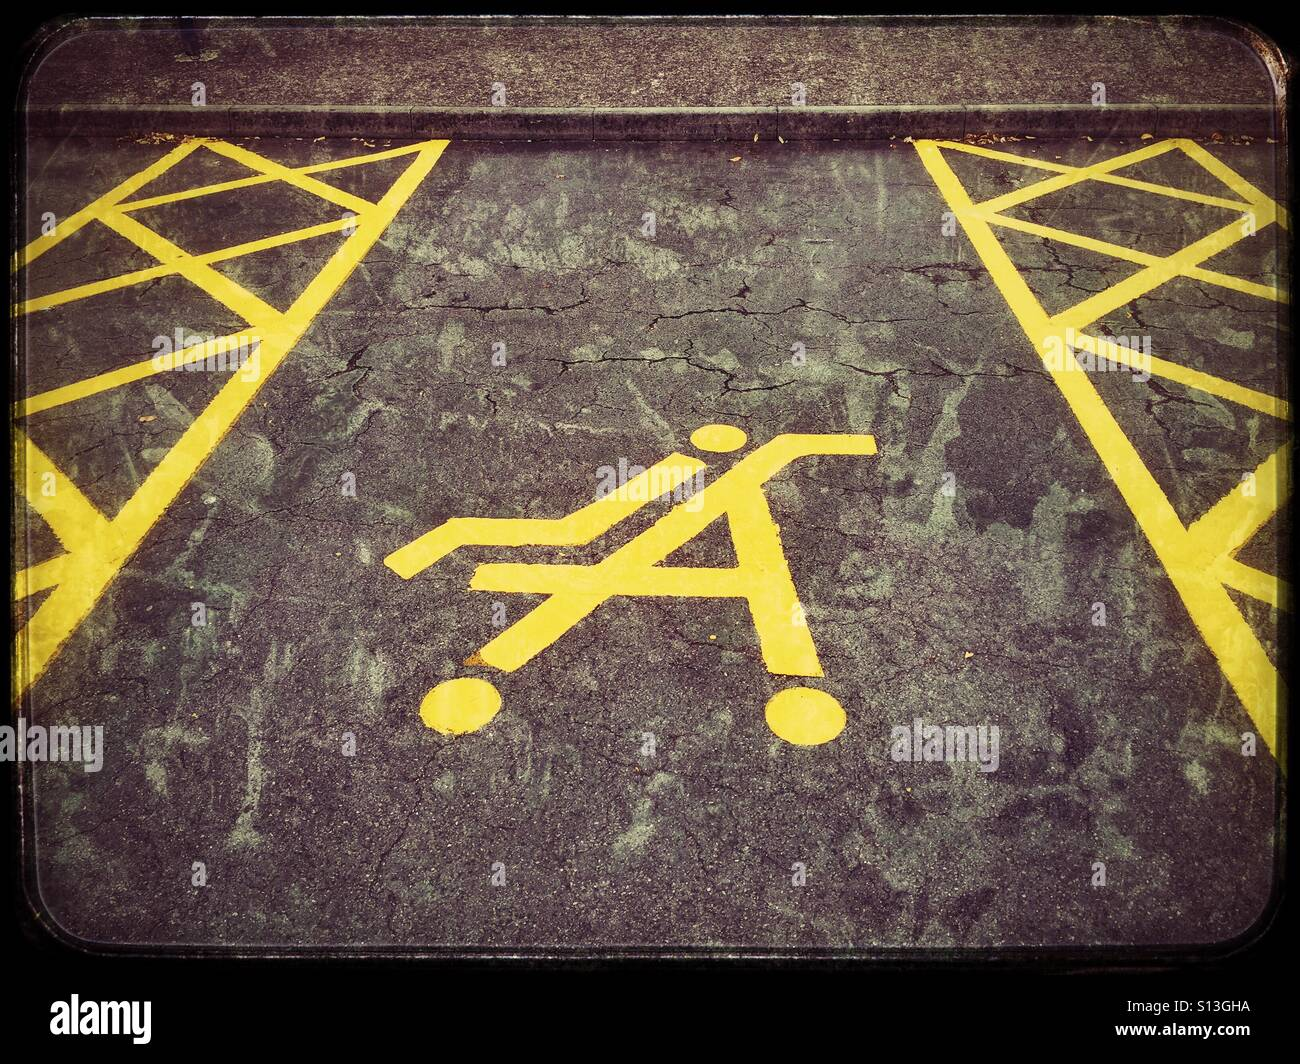 A parking space reserved for people who travel by car transport a parking space reserved for people who travel by car transport children the symbol of a child sitting in a pram shows this space as one reserved for the buycottarizona